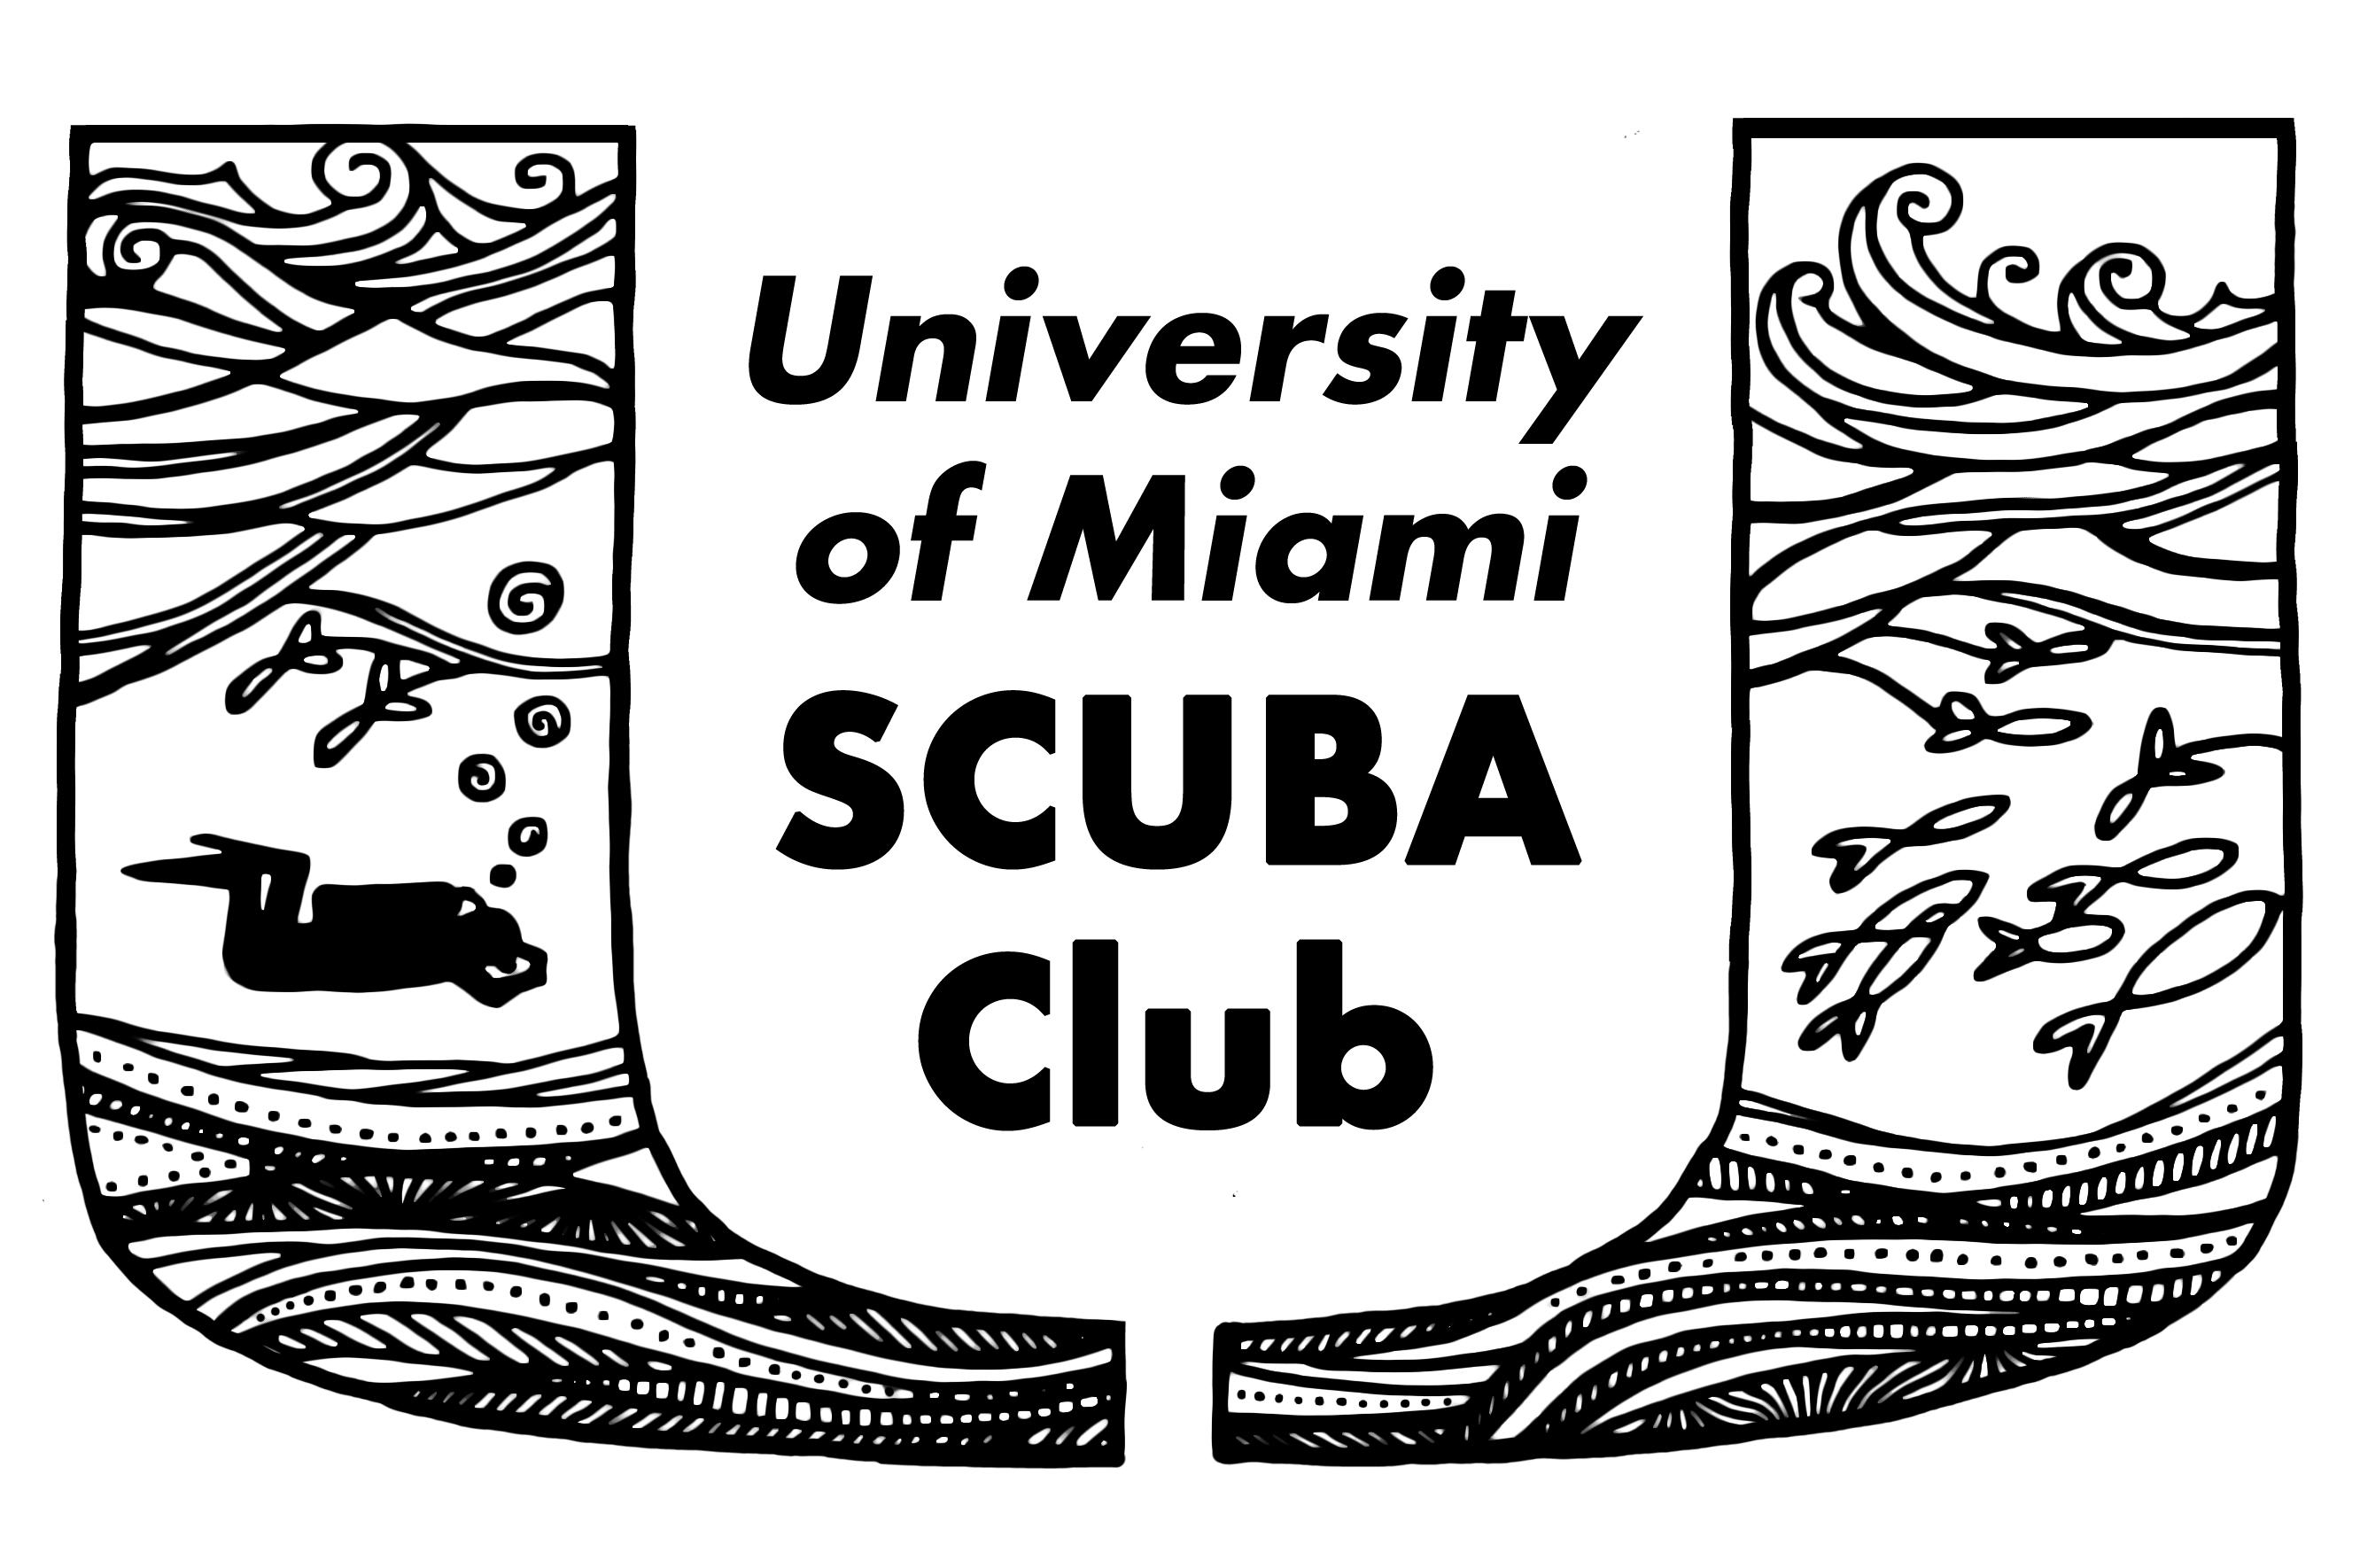 University of Miami SCUBA sticker